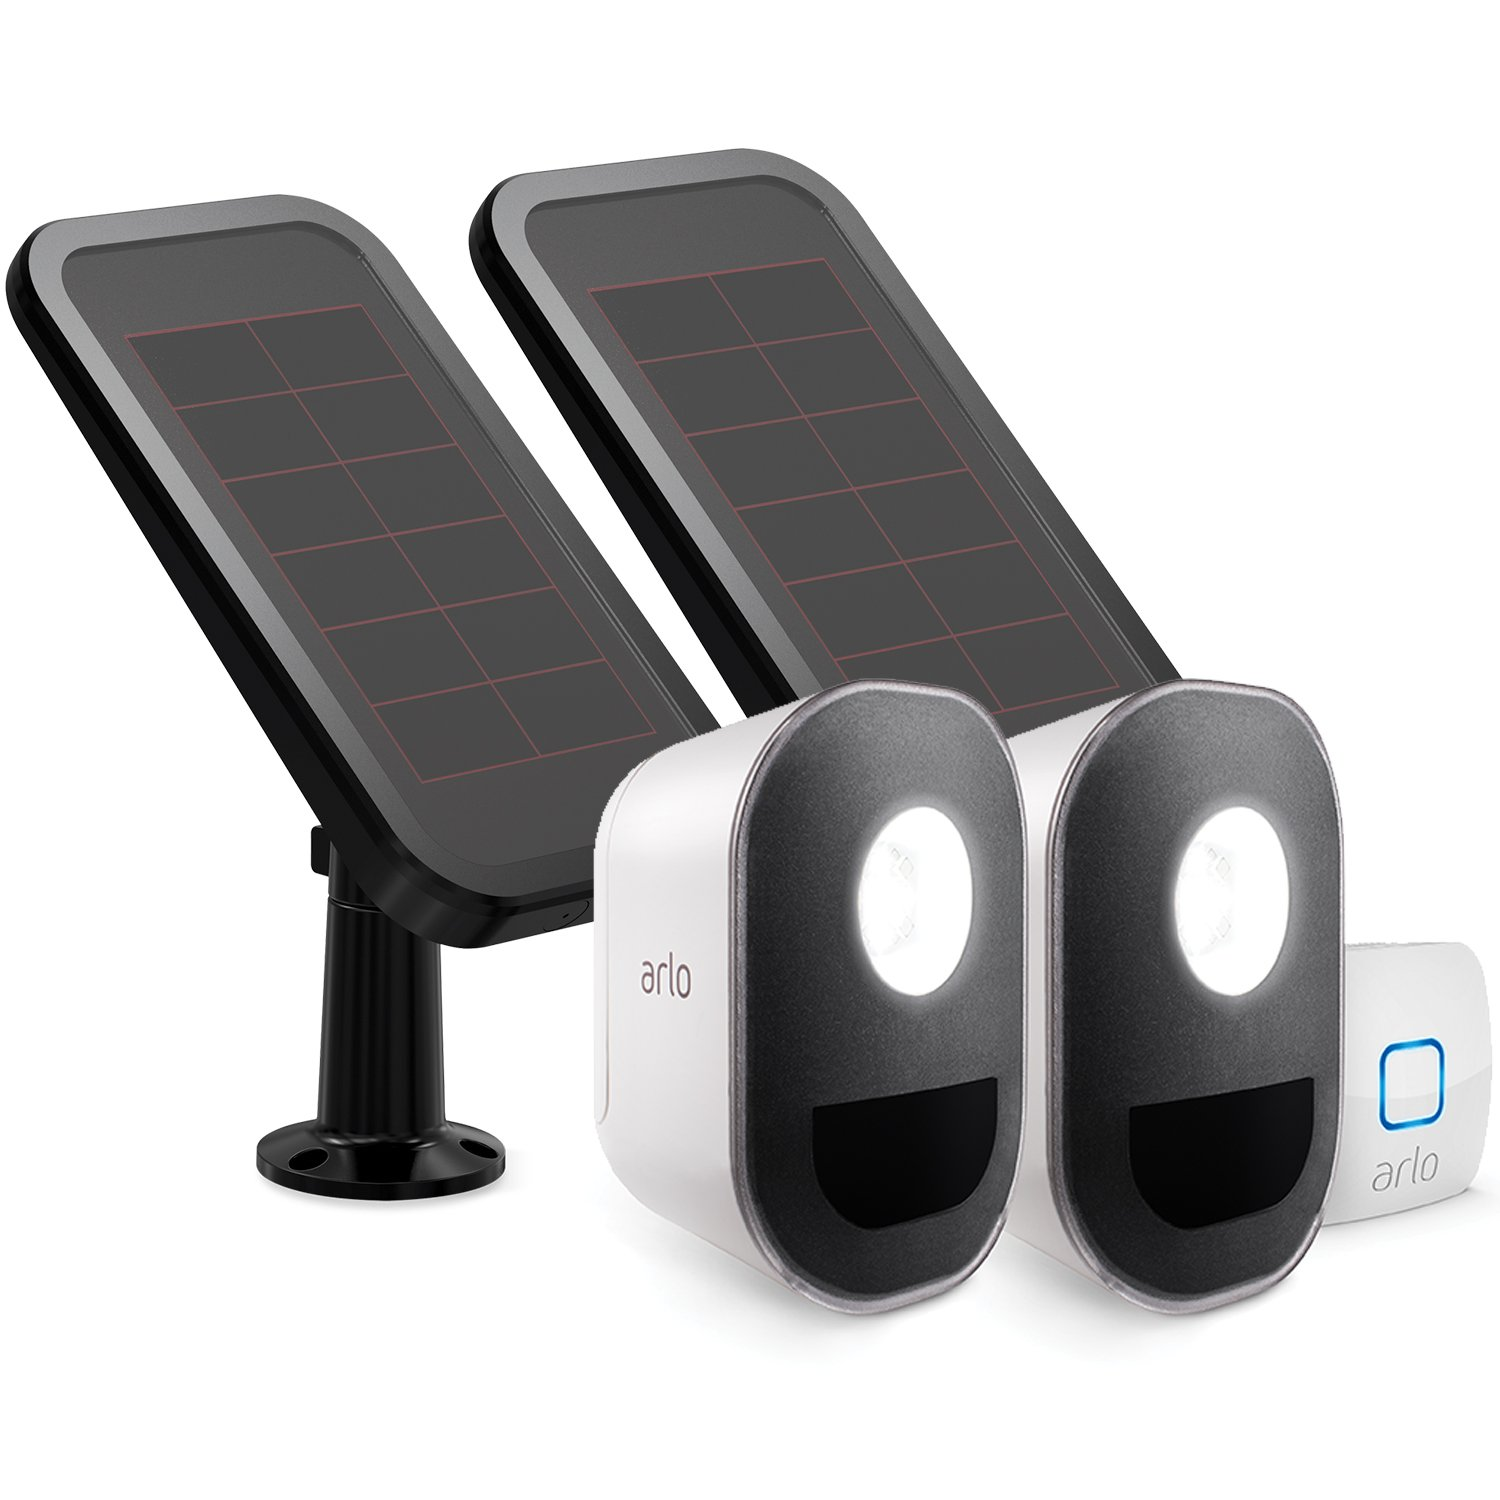 Arlo - Smart Home Security Light with Solar Panels. Wireless, Weather Resistant, Motion Sensor, Indoor/Outdoor, Multi-colored LED, Works with Amazon Alexa   2 Light Kit, camera not included (ALS1102)